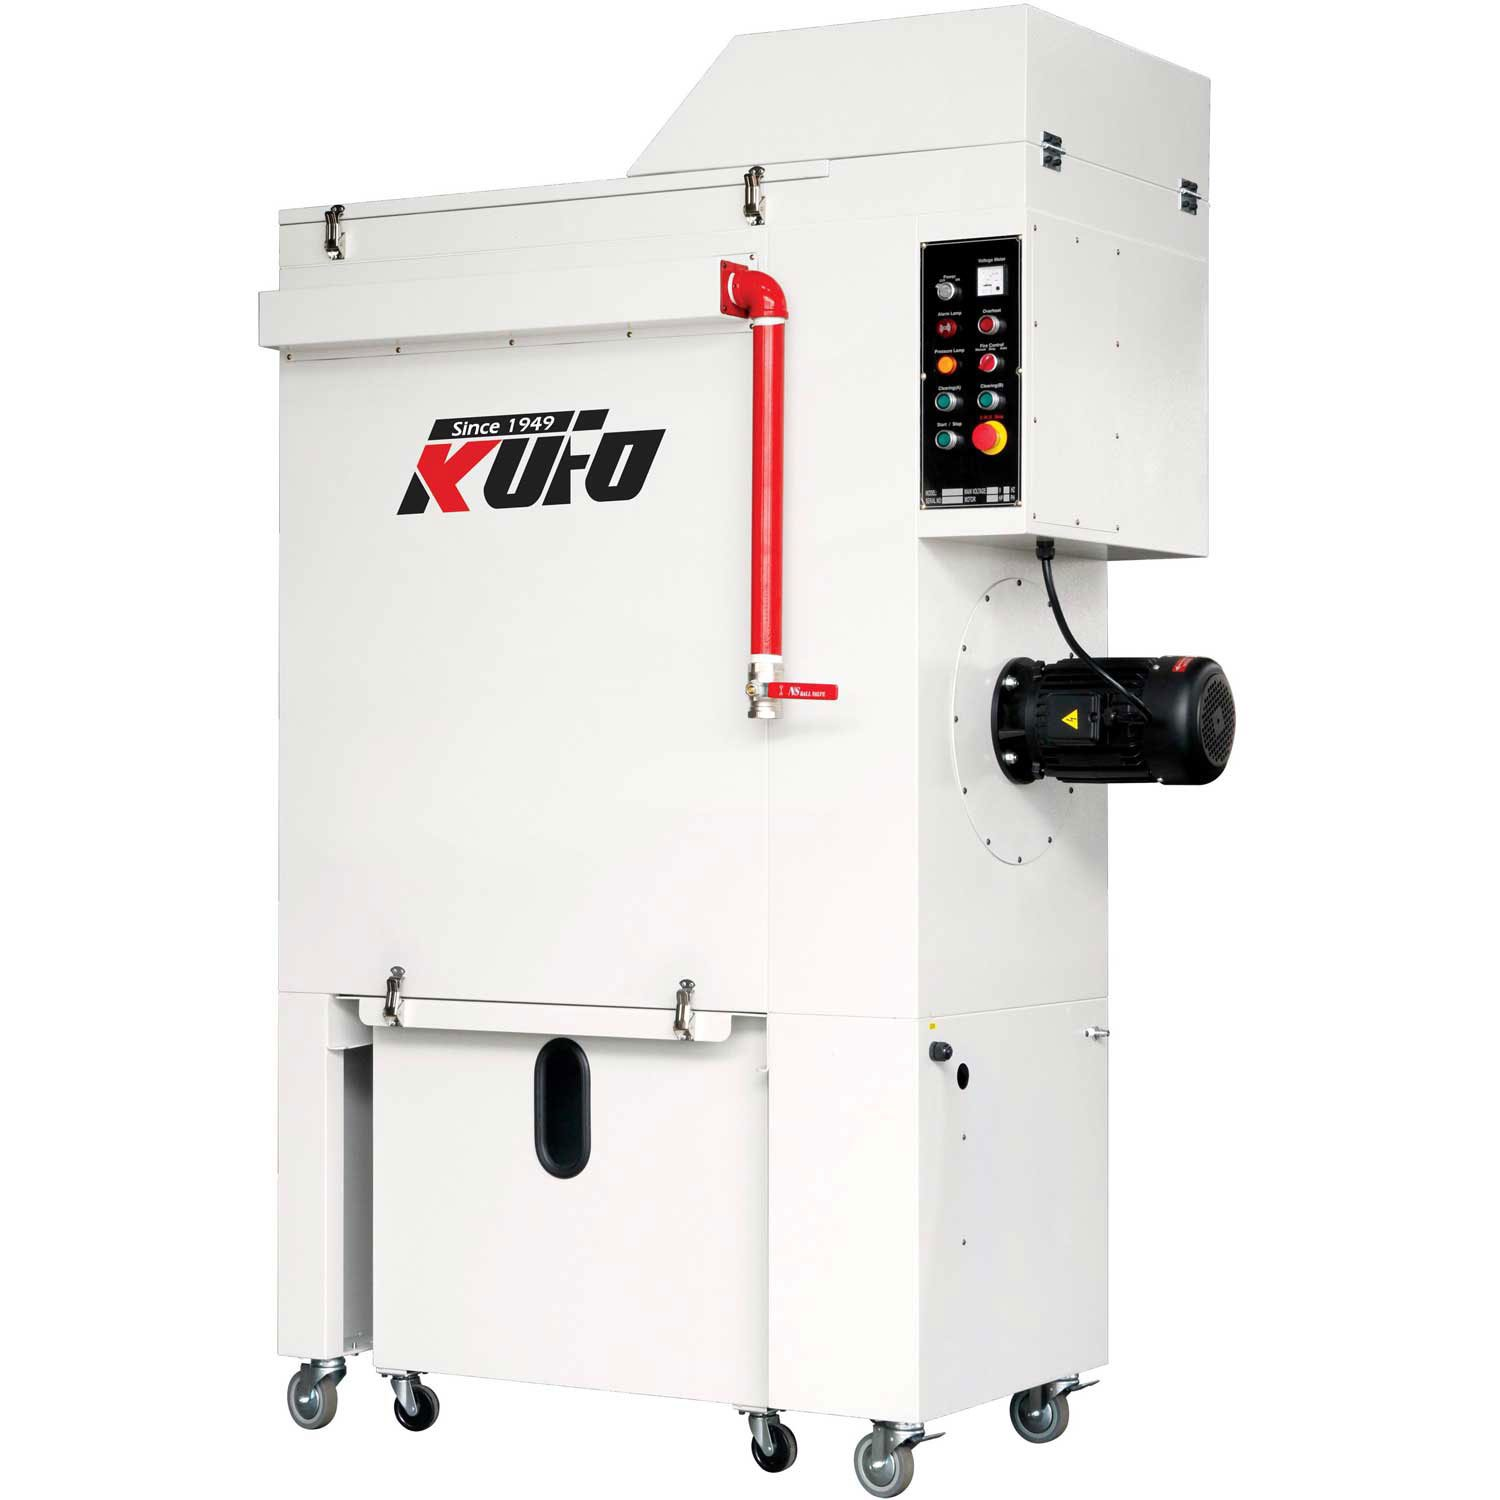 Kufo Seco UFO-LS500 5HP 2649 CFM 3 Phase 220V Total Enclosed Automation Work Station Dust Collector